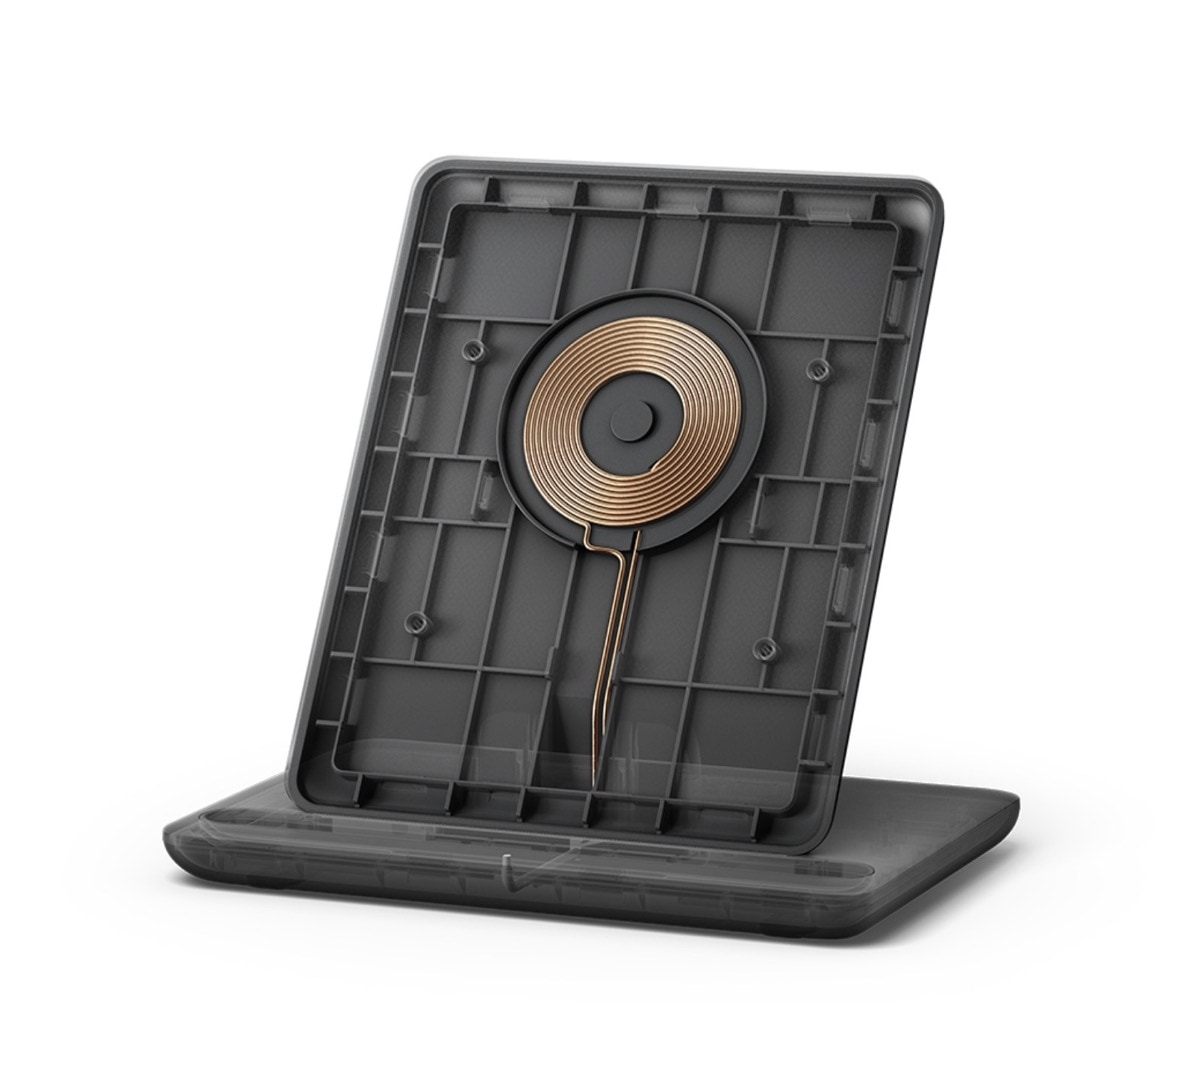 Kindle Paperwhite 5 2021 Wireless Charging Dock coils